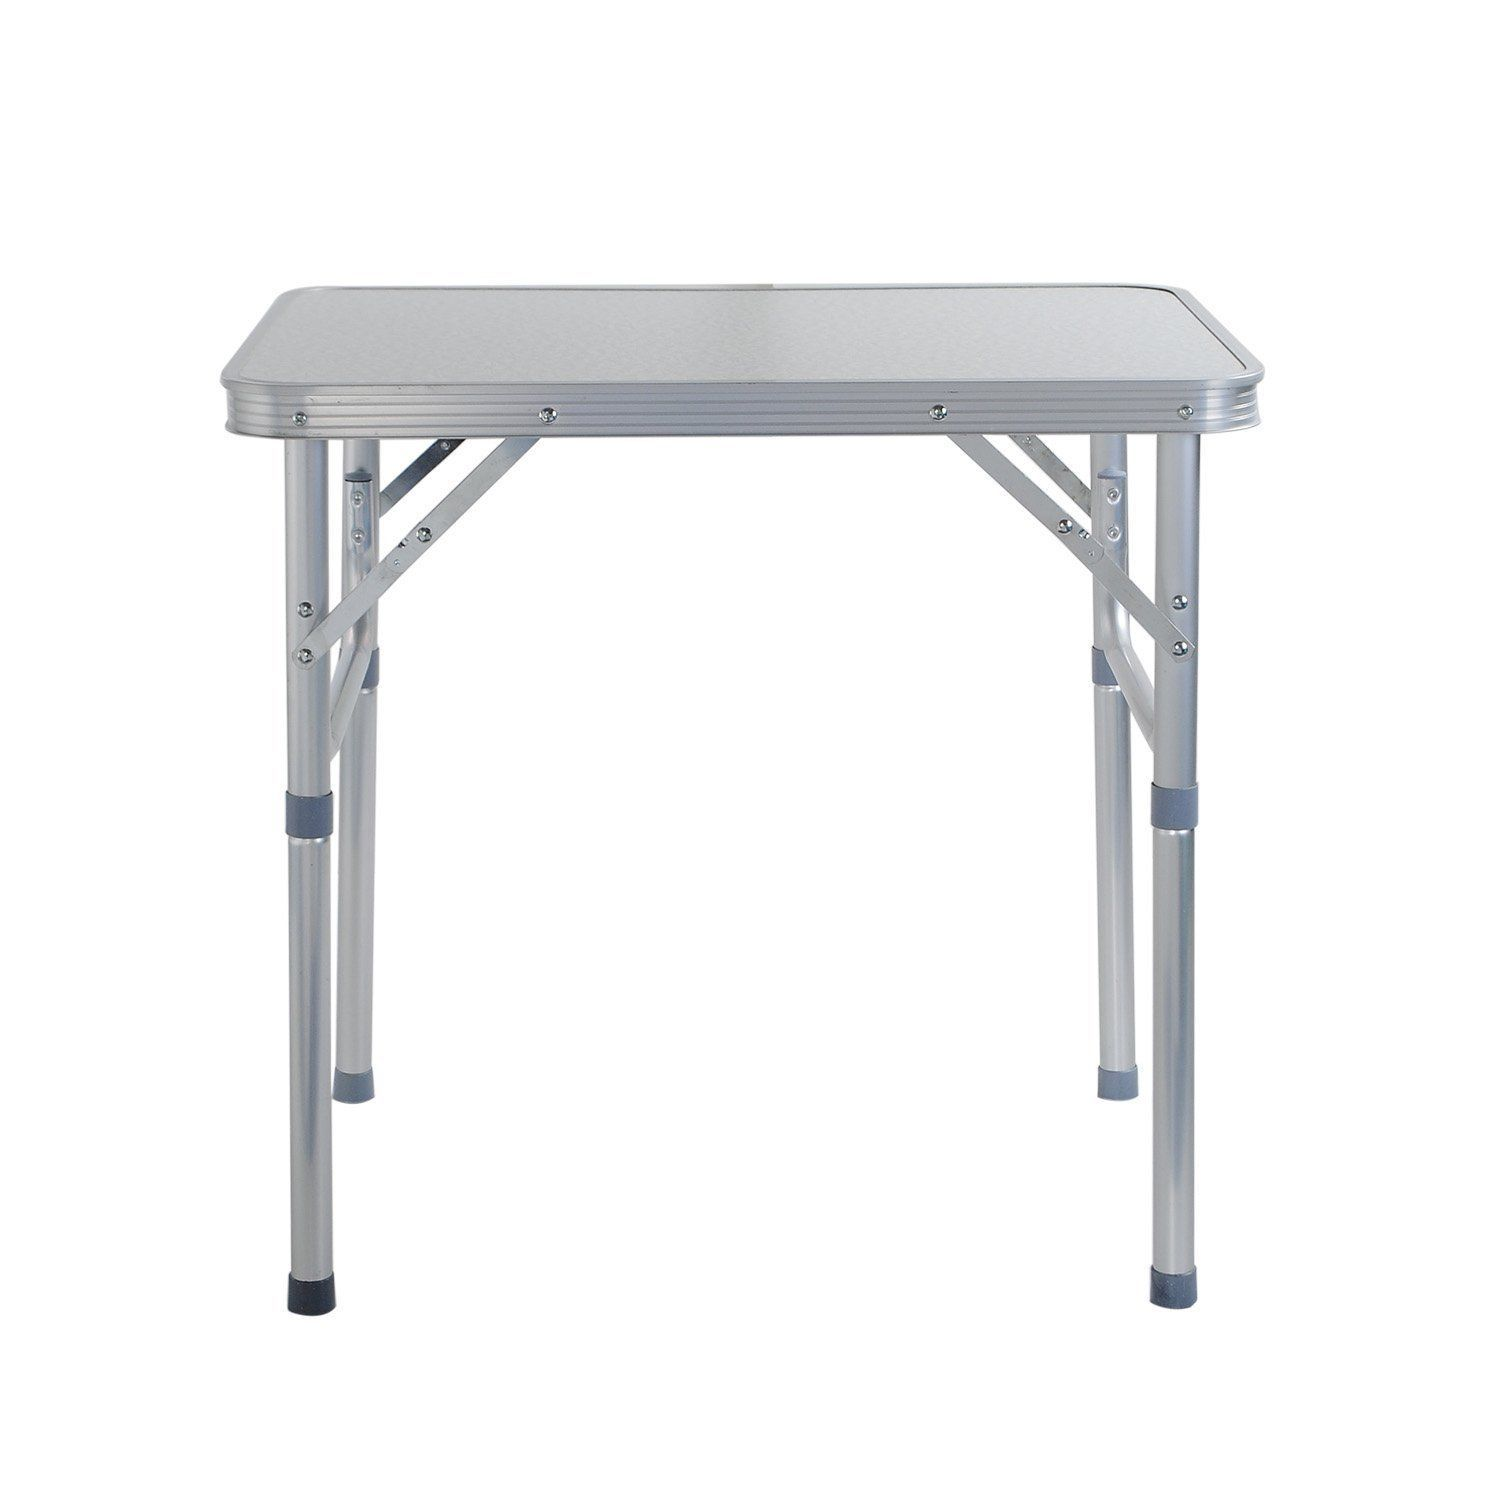 Small Foldable Table Ikea Folding Uk And Chairs Walmart Canada Argos Garden Amazon Kmart Side Outdoor Gear Kitchen Expocafeperu Com - Garden Furniture Clearance Argos